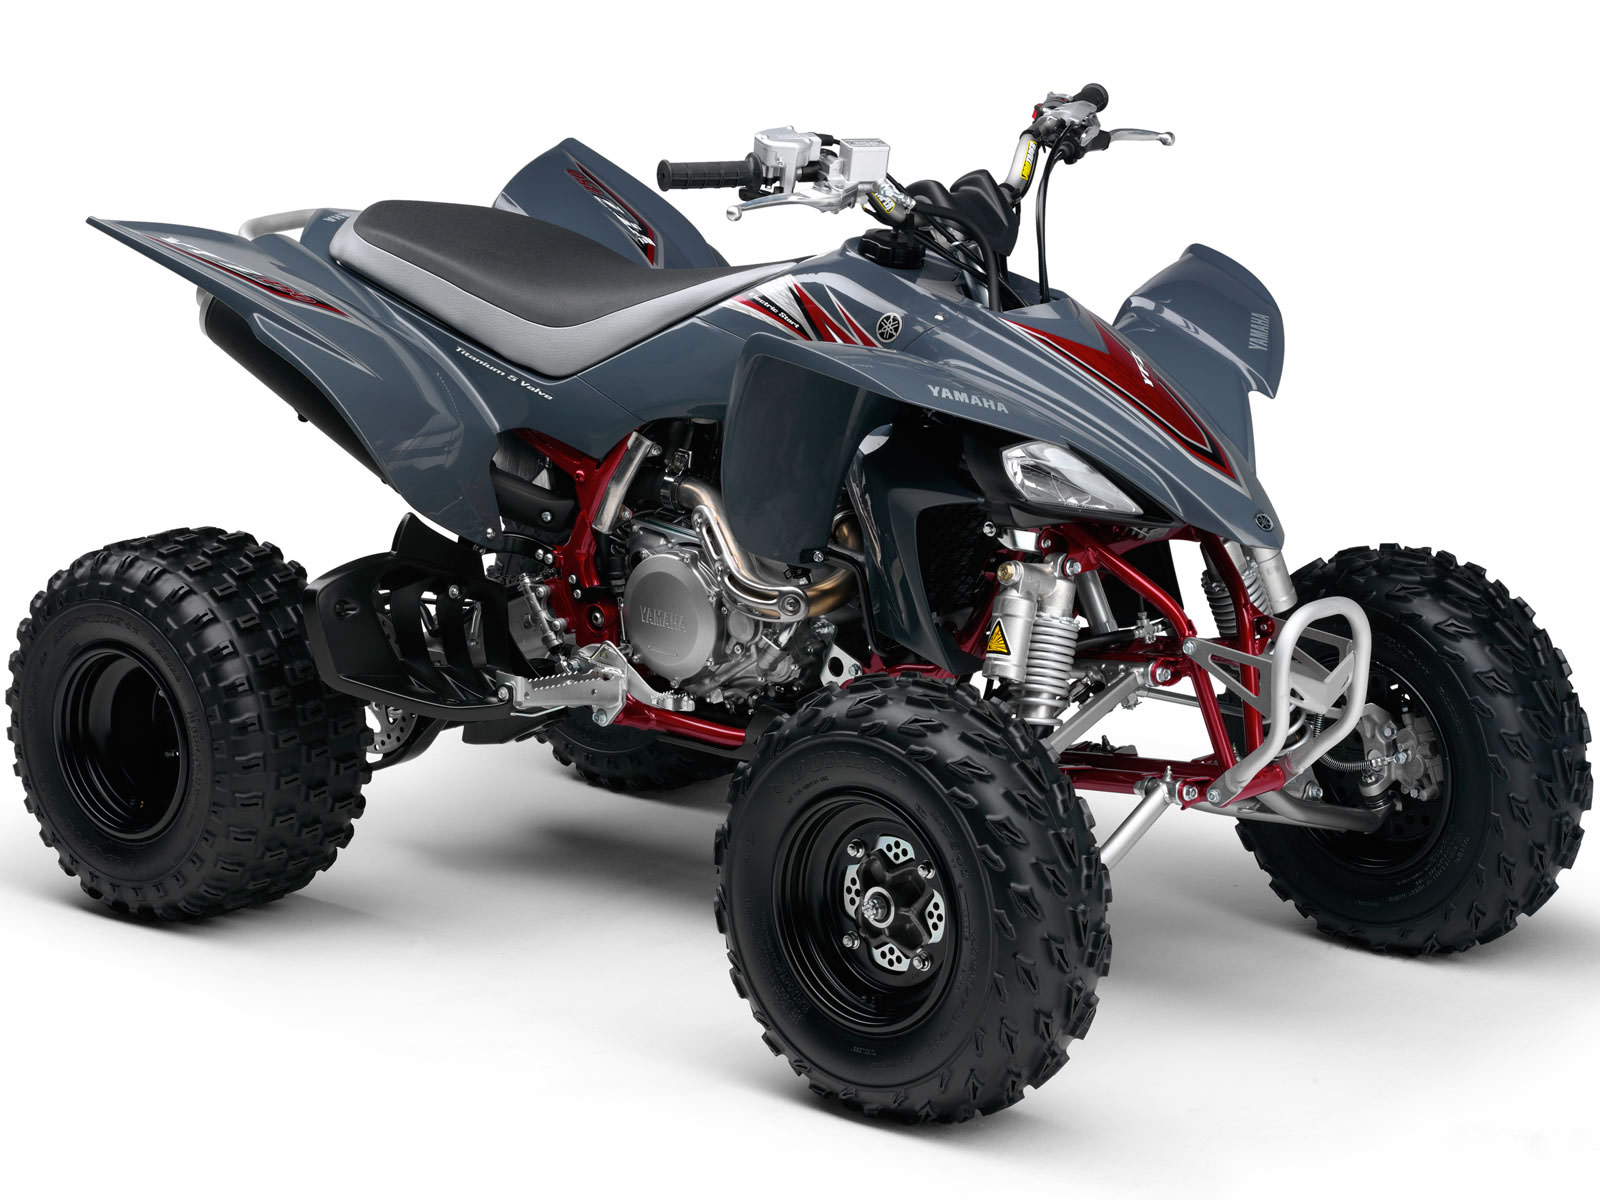 2008 yamaha yfz450 atv pictures review specifications. Black Bedroom Furniture Sets. Home Design Ideas